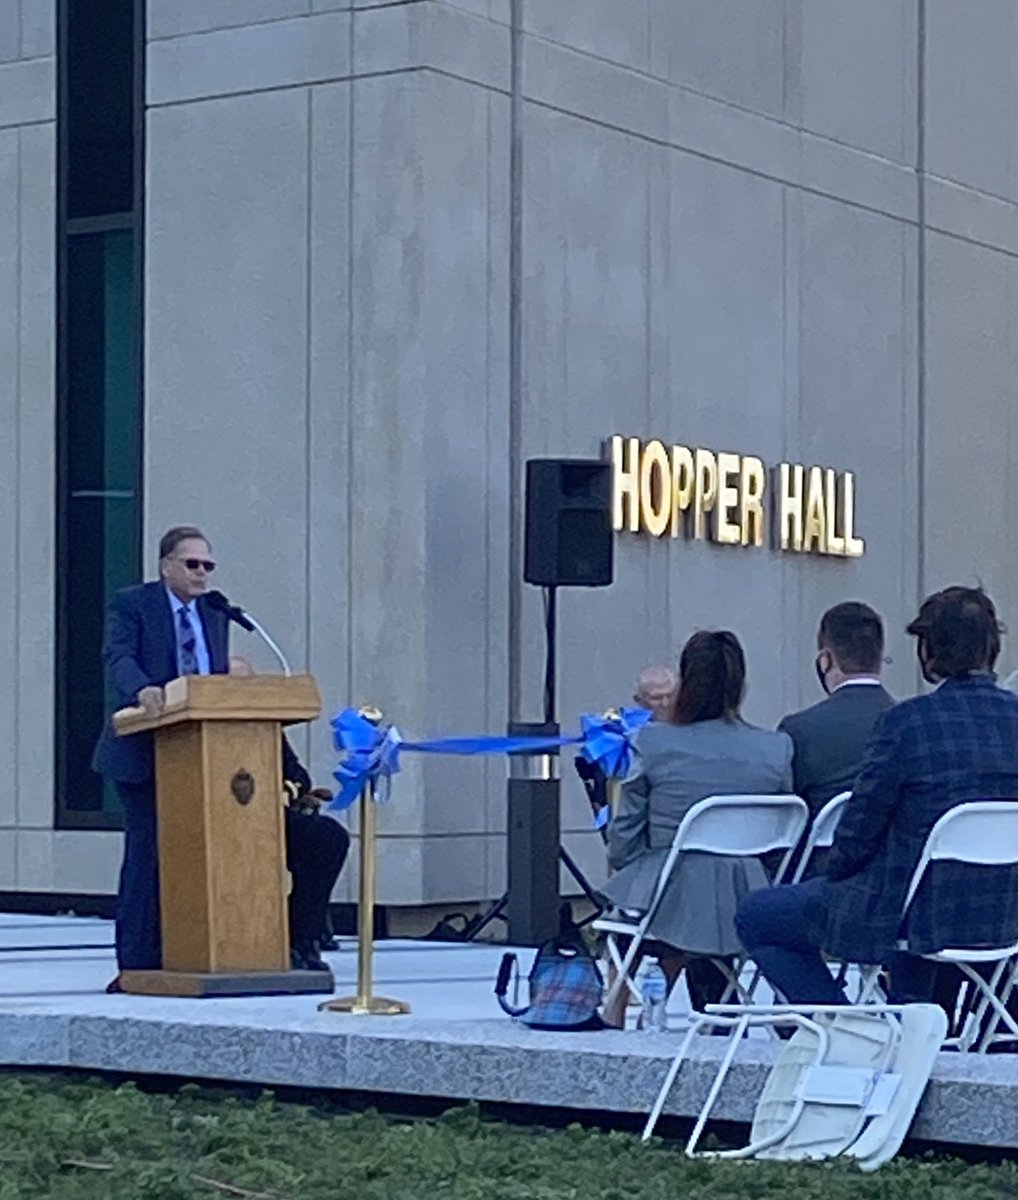 Today, I had the honor of speaking at the Ribbon Cutting Ceremony for Hopper Hall, the @NavalAcademys newest addition that will ensure future Sailors are prepared to defend our nation in the cybersecurity domain. #ExScientiaTridens